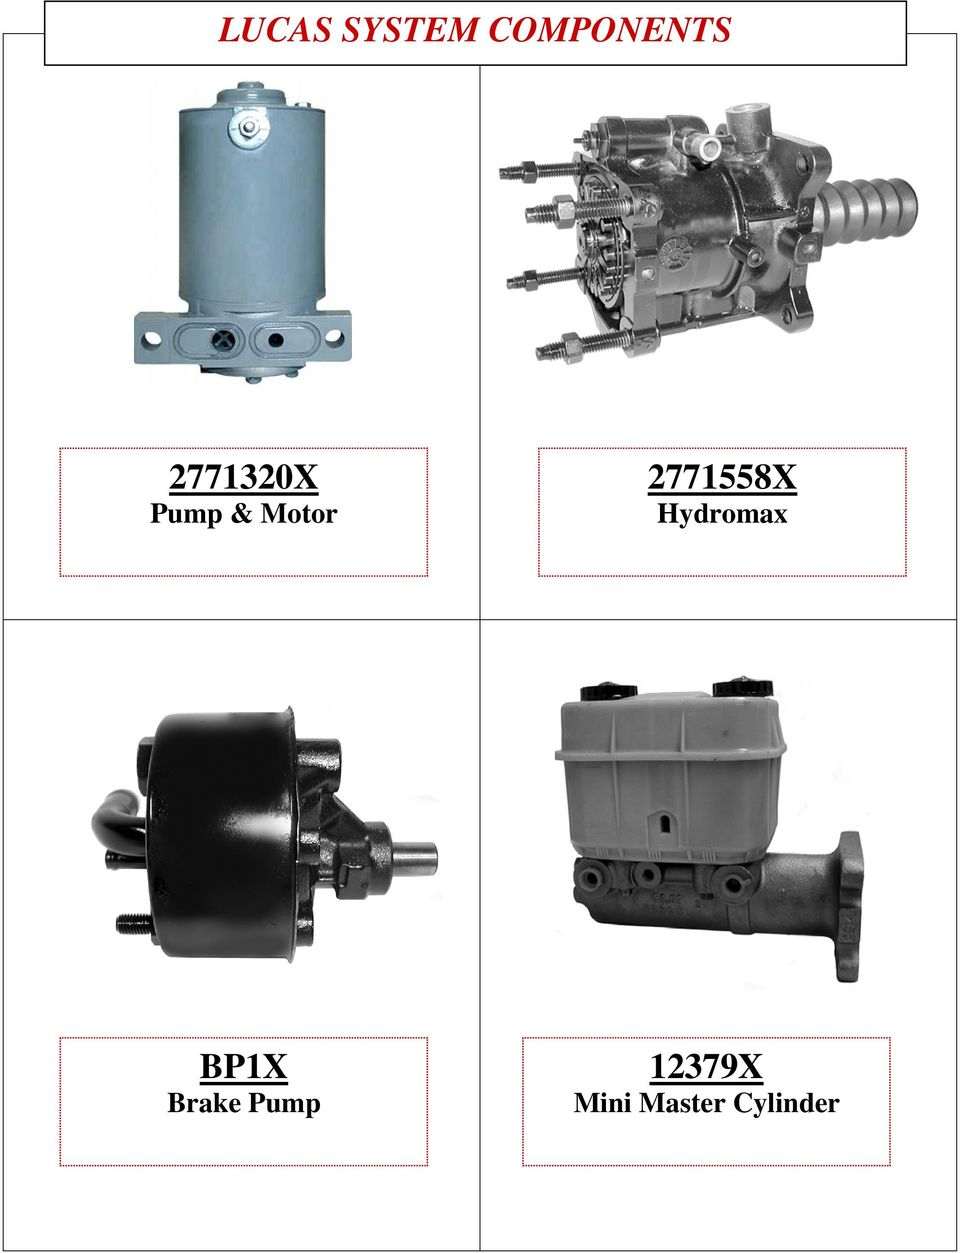 Lucas Girling System Components And Information Pdf Dexter Brake Pump Wiring Diagram 2771558x Hydromax Bp1x